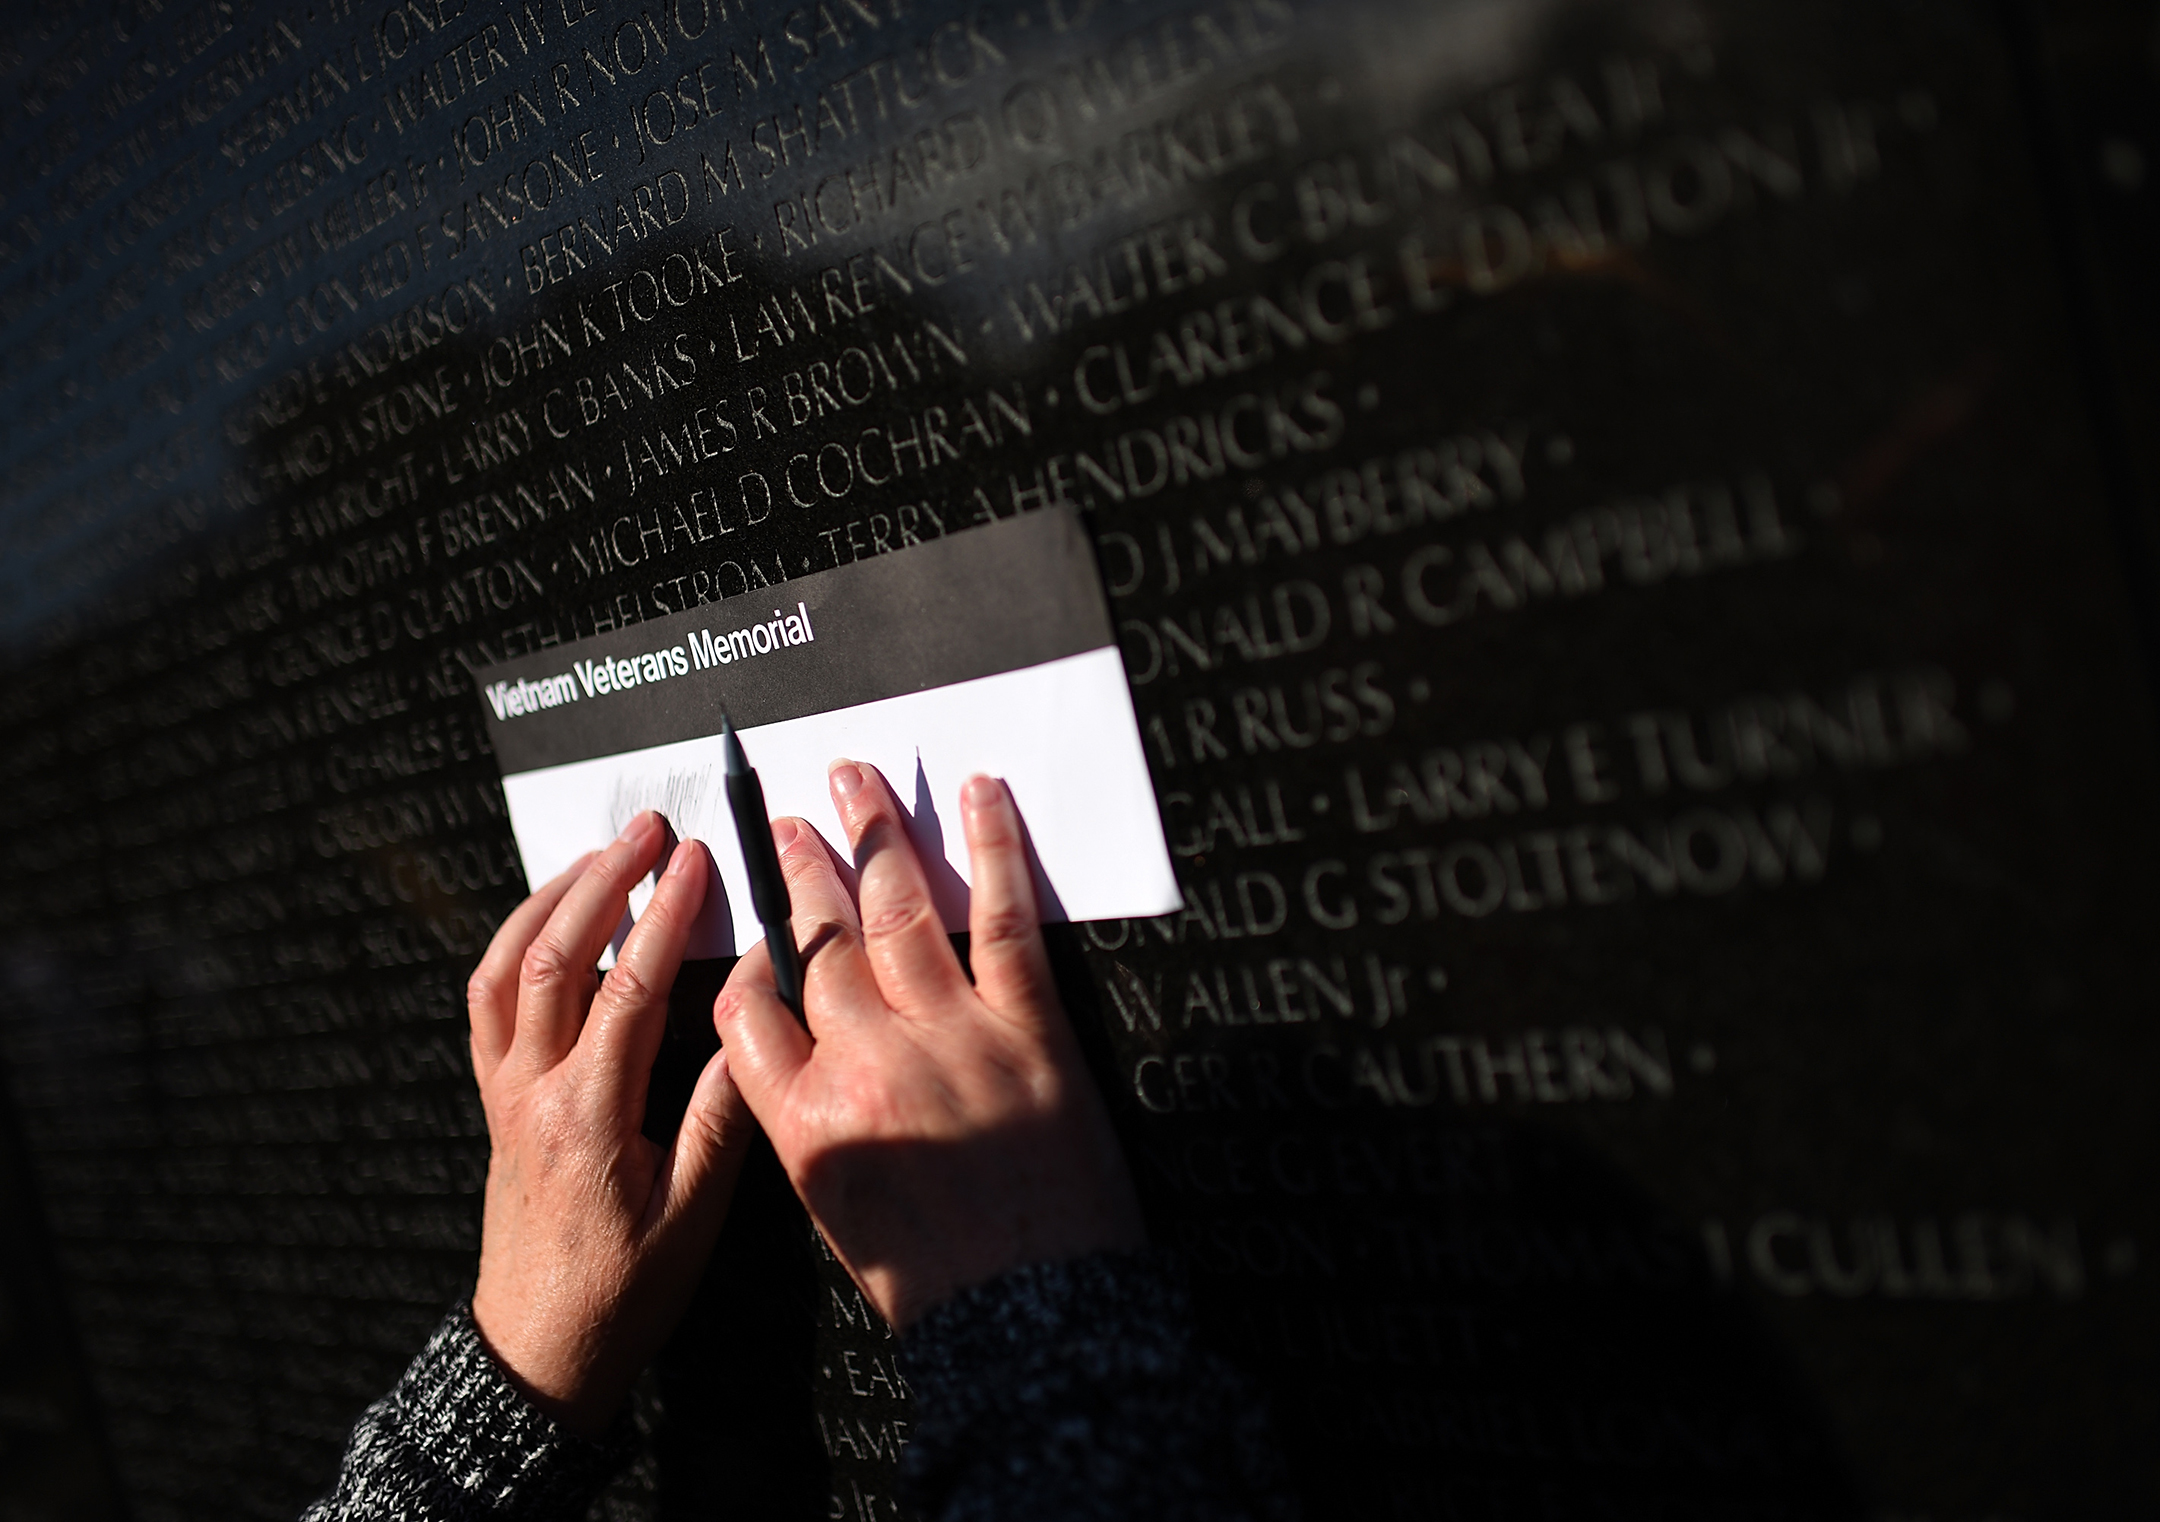 two hands hold a piece of paper up to the vietnam veterans memorial to make an etching of a name on the wall